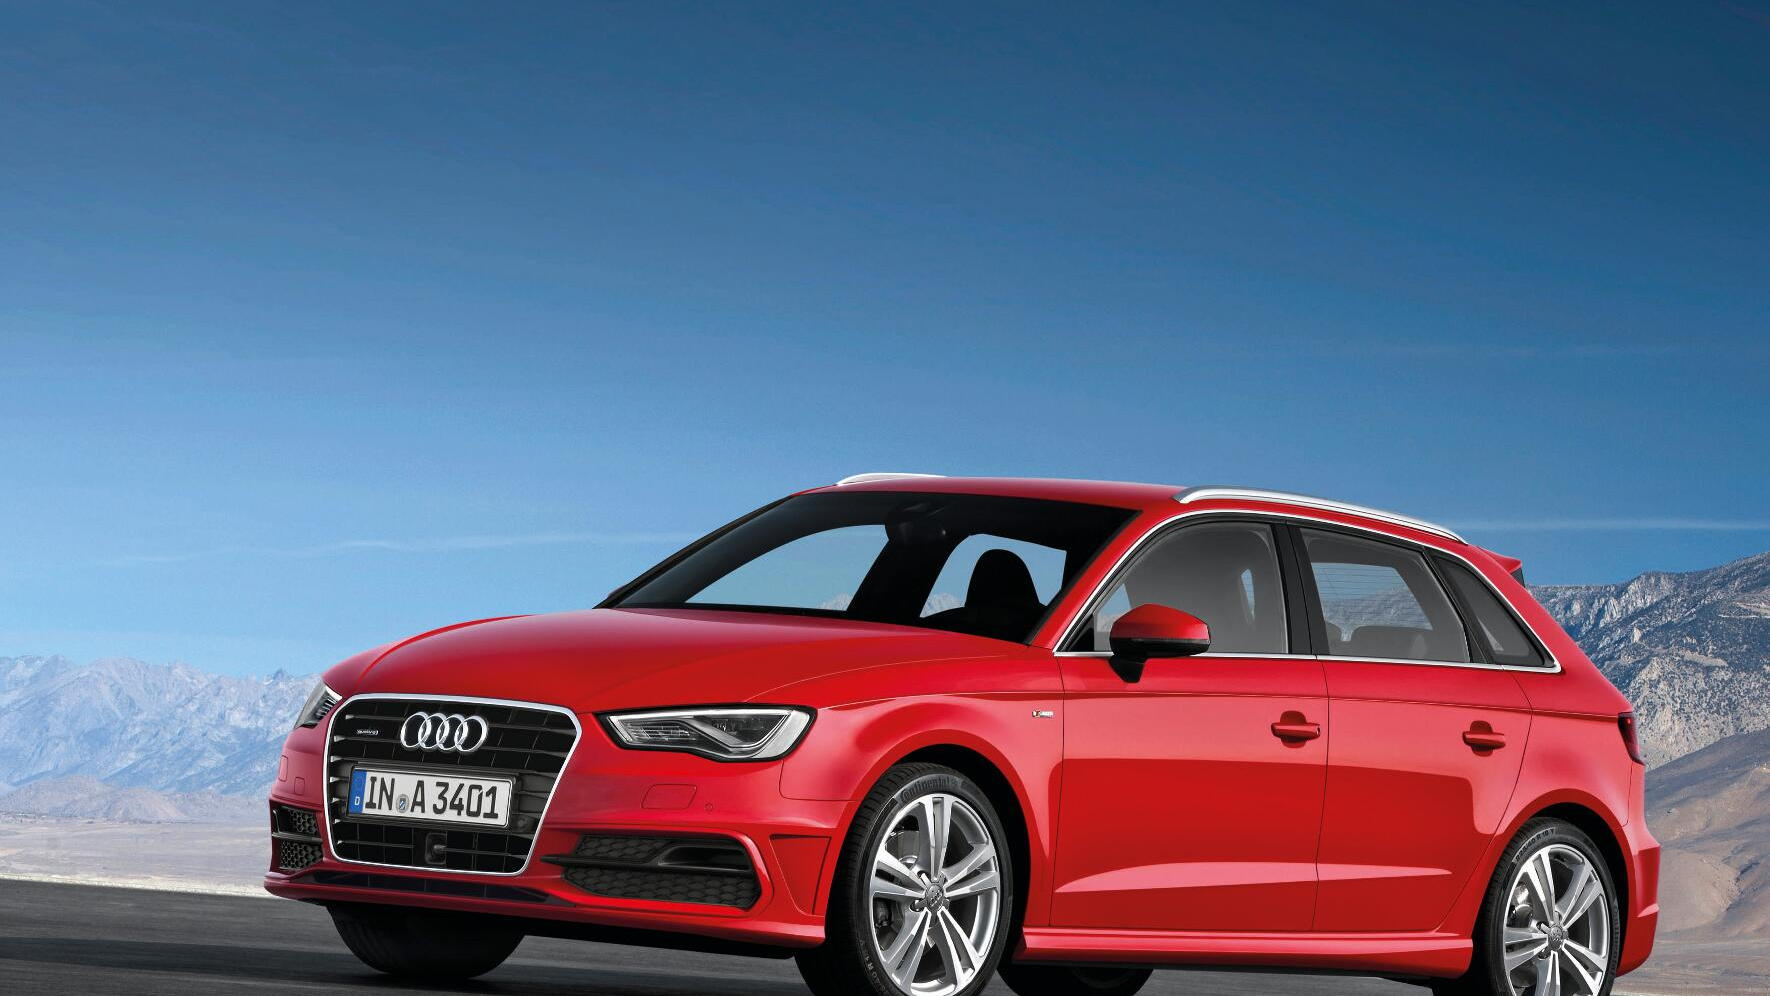 Audi A3 Allroad In The Works: Report